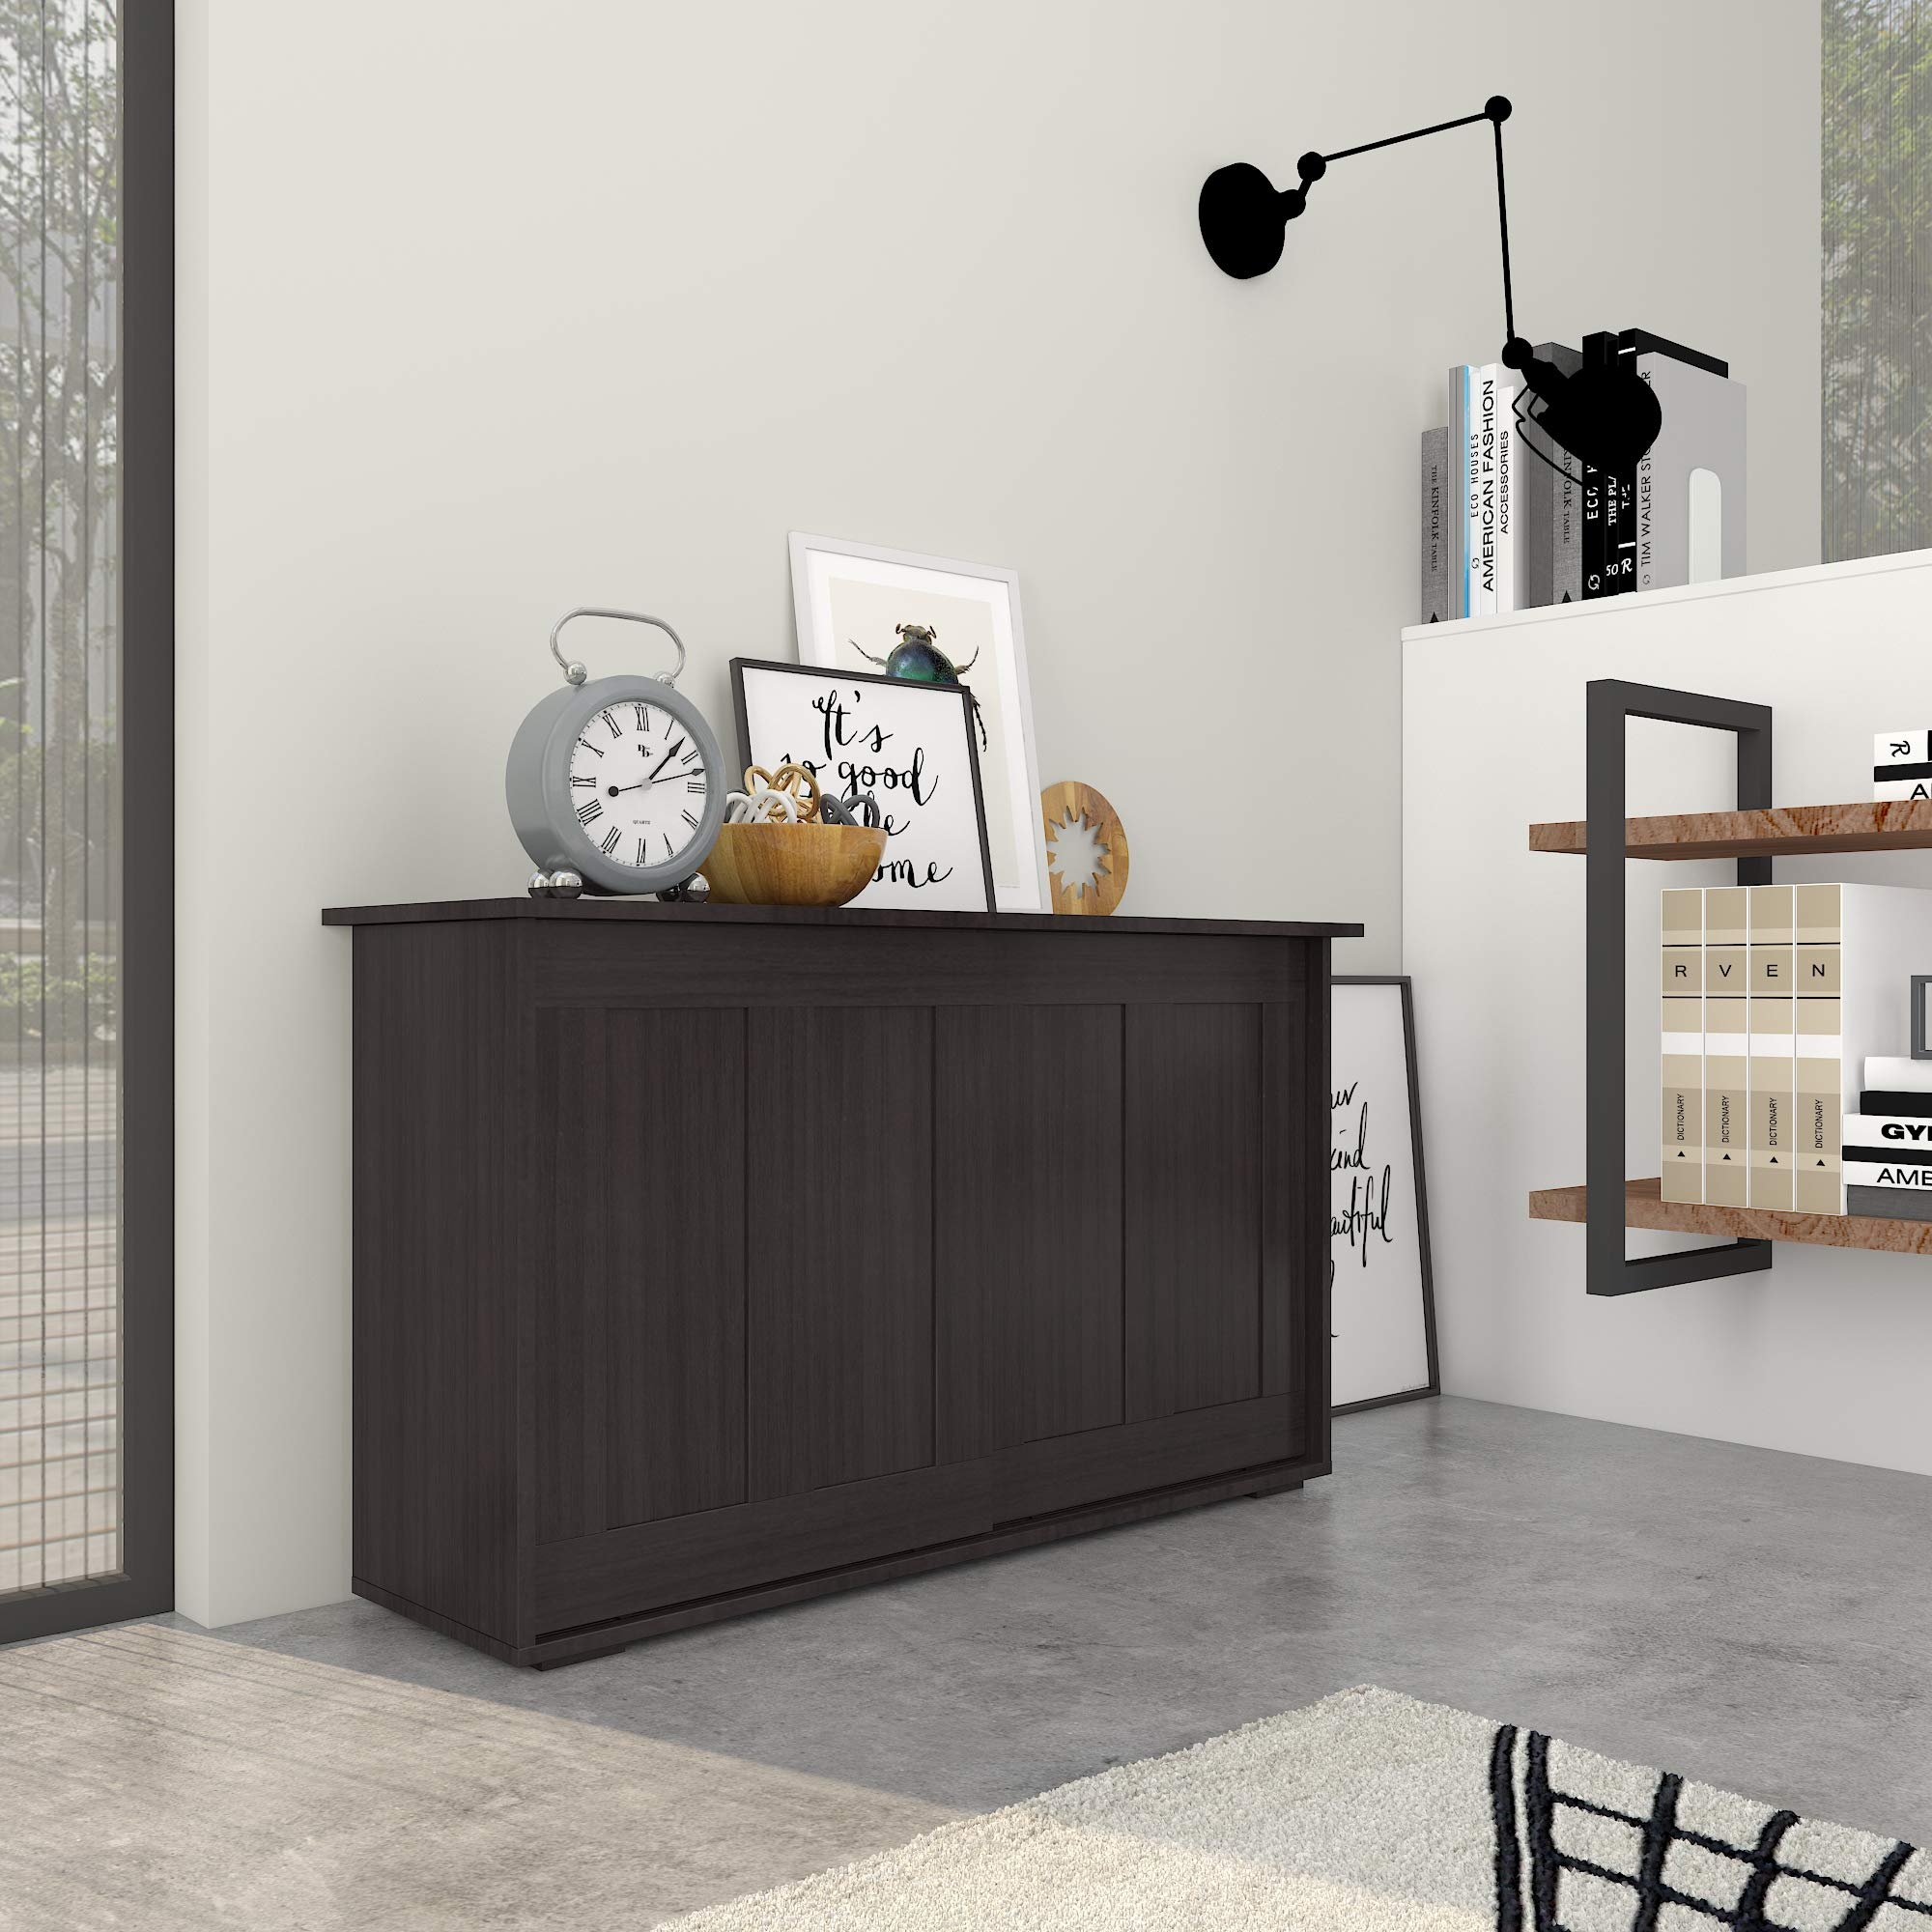 Amazon Com Cozycasa Sideboard Buffet Cabinet Storage Tv Console Table With Sliding Doors Adjustable Shelf Kitchen Pantry Cabinets Brown Credenza Sideboard Buffet Cupboard Buffets Sideboards